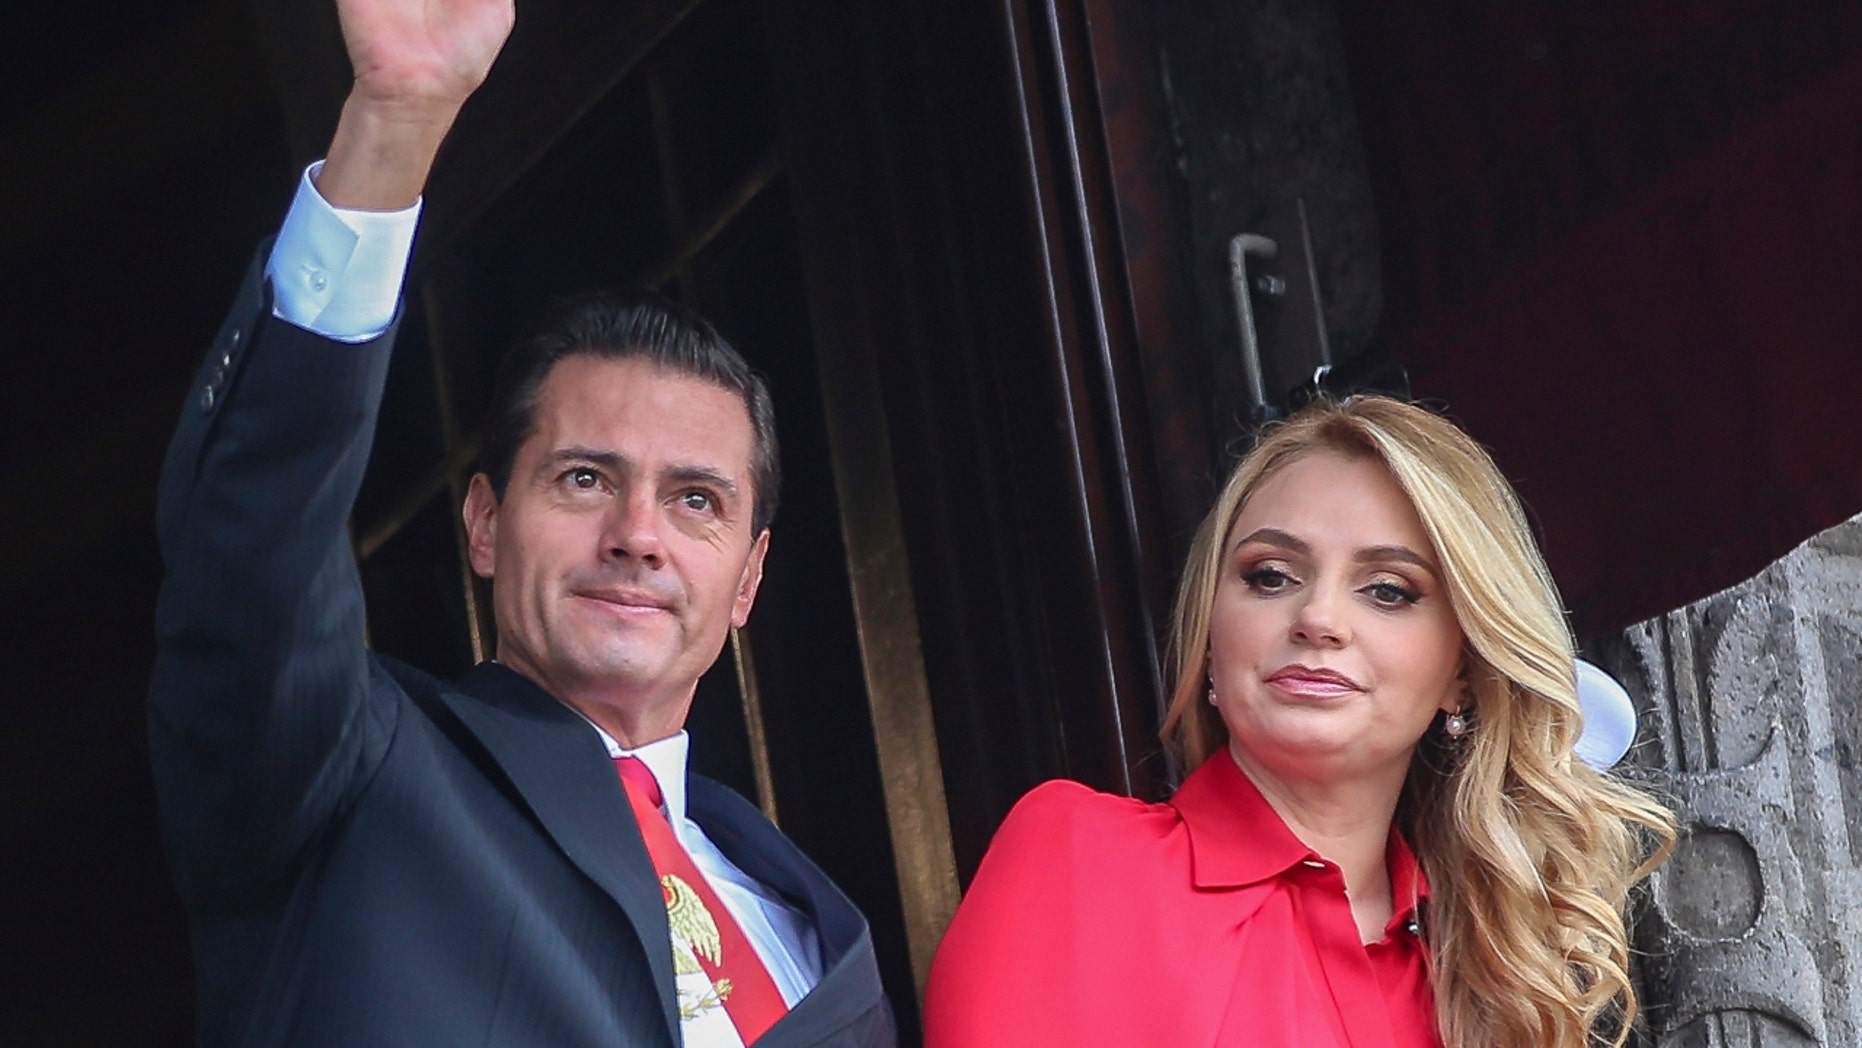 In this Sept. 16, 2018 file photo, Mexico's President Enrique Pena Nieto waves from a National Palace balcony, accompanied by first lady Angelica Rivera, during the Independence Day military parade in the Zocalo of Mexico City. (AP Photo/Anthony Vazquez, File)